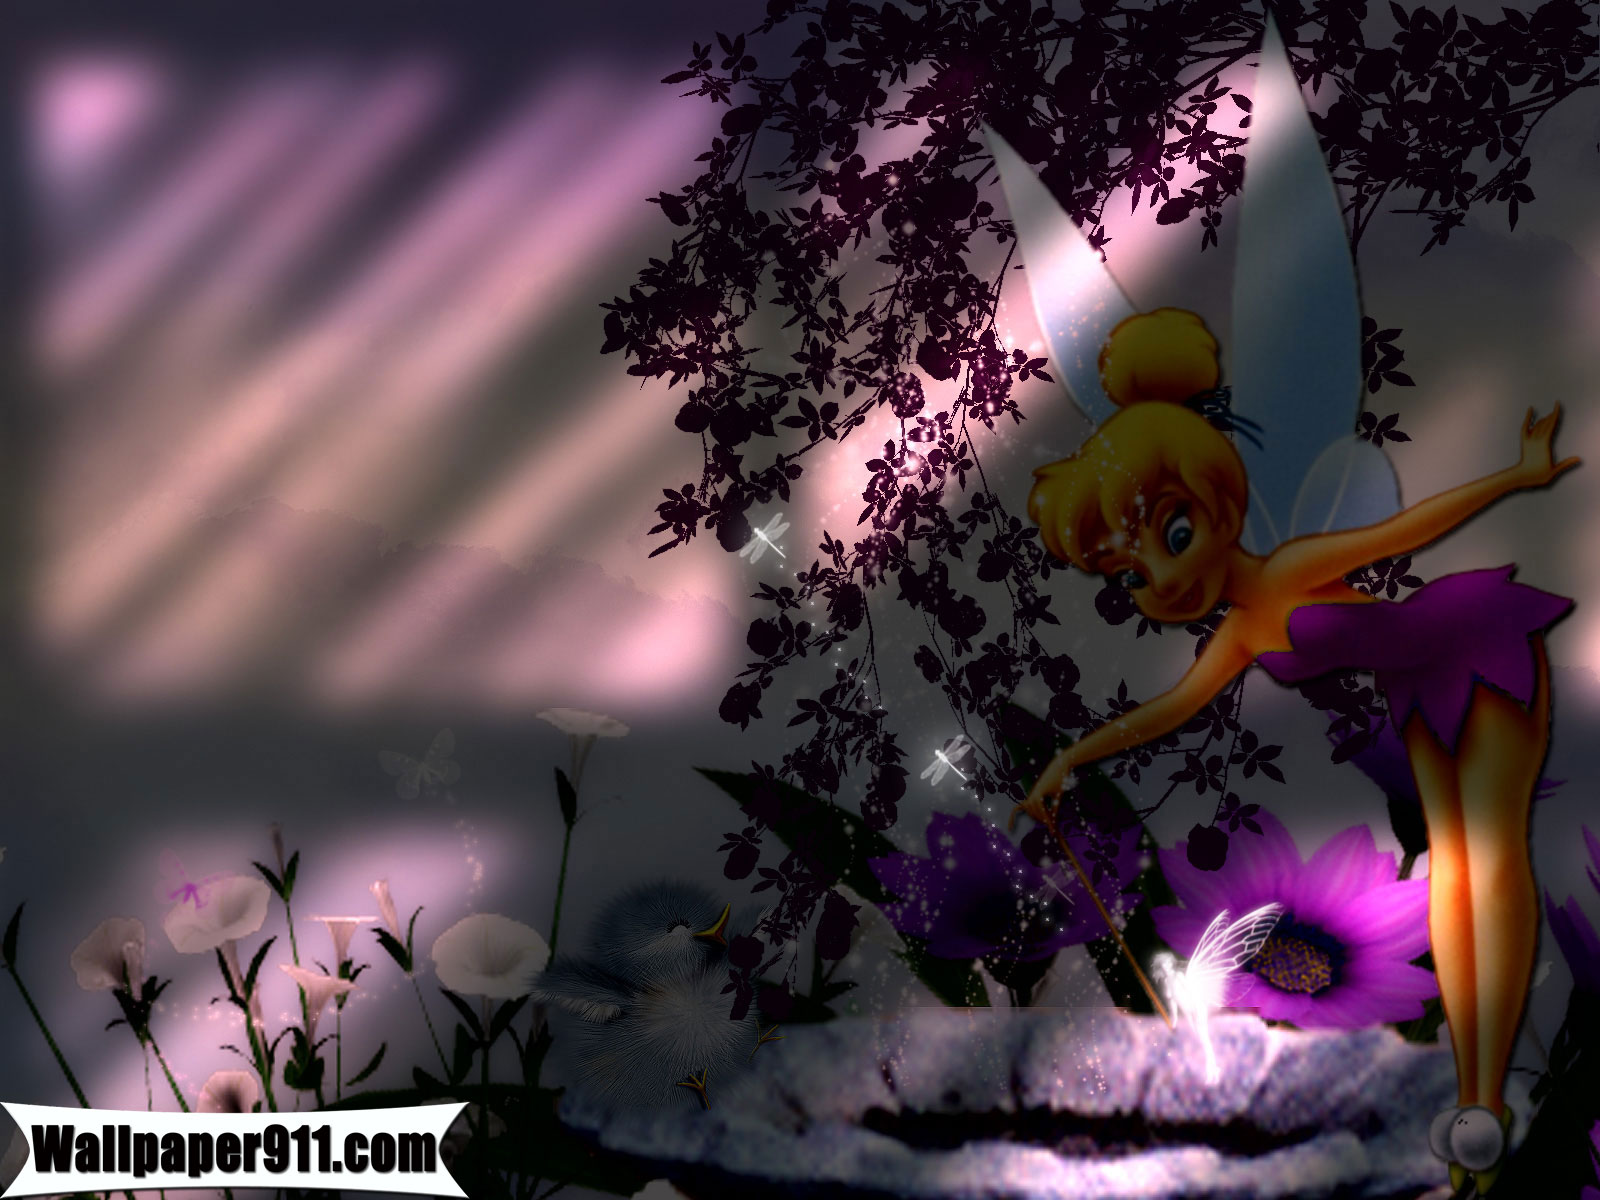 Cartoons Wallpaper: Tinkerbell And Friends Wallpapers Wide with HD 1600x1200